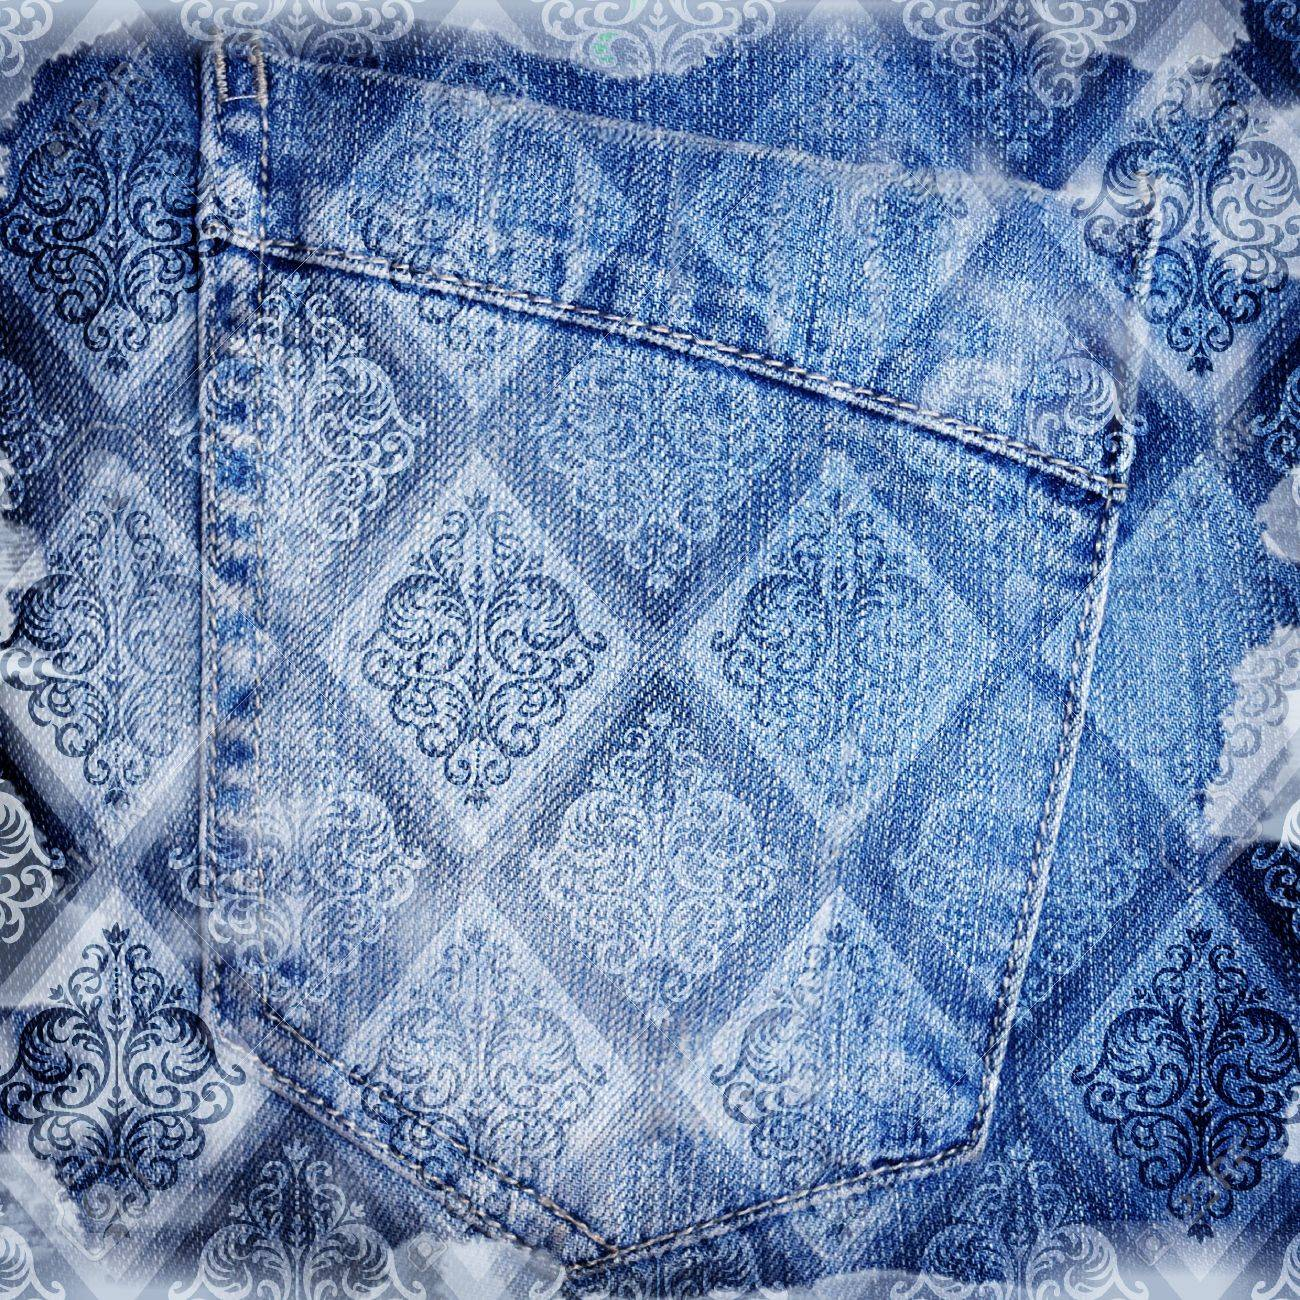 Abstract jeans backround - 14835564